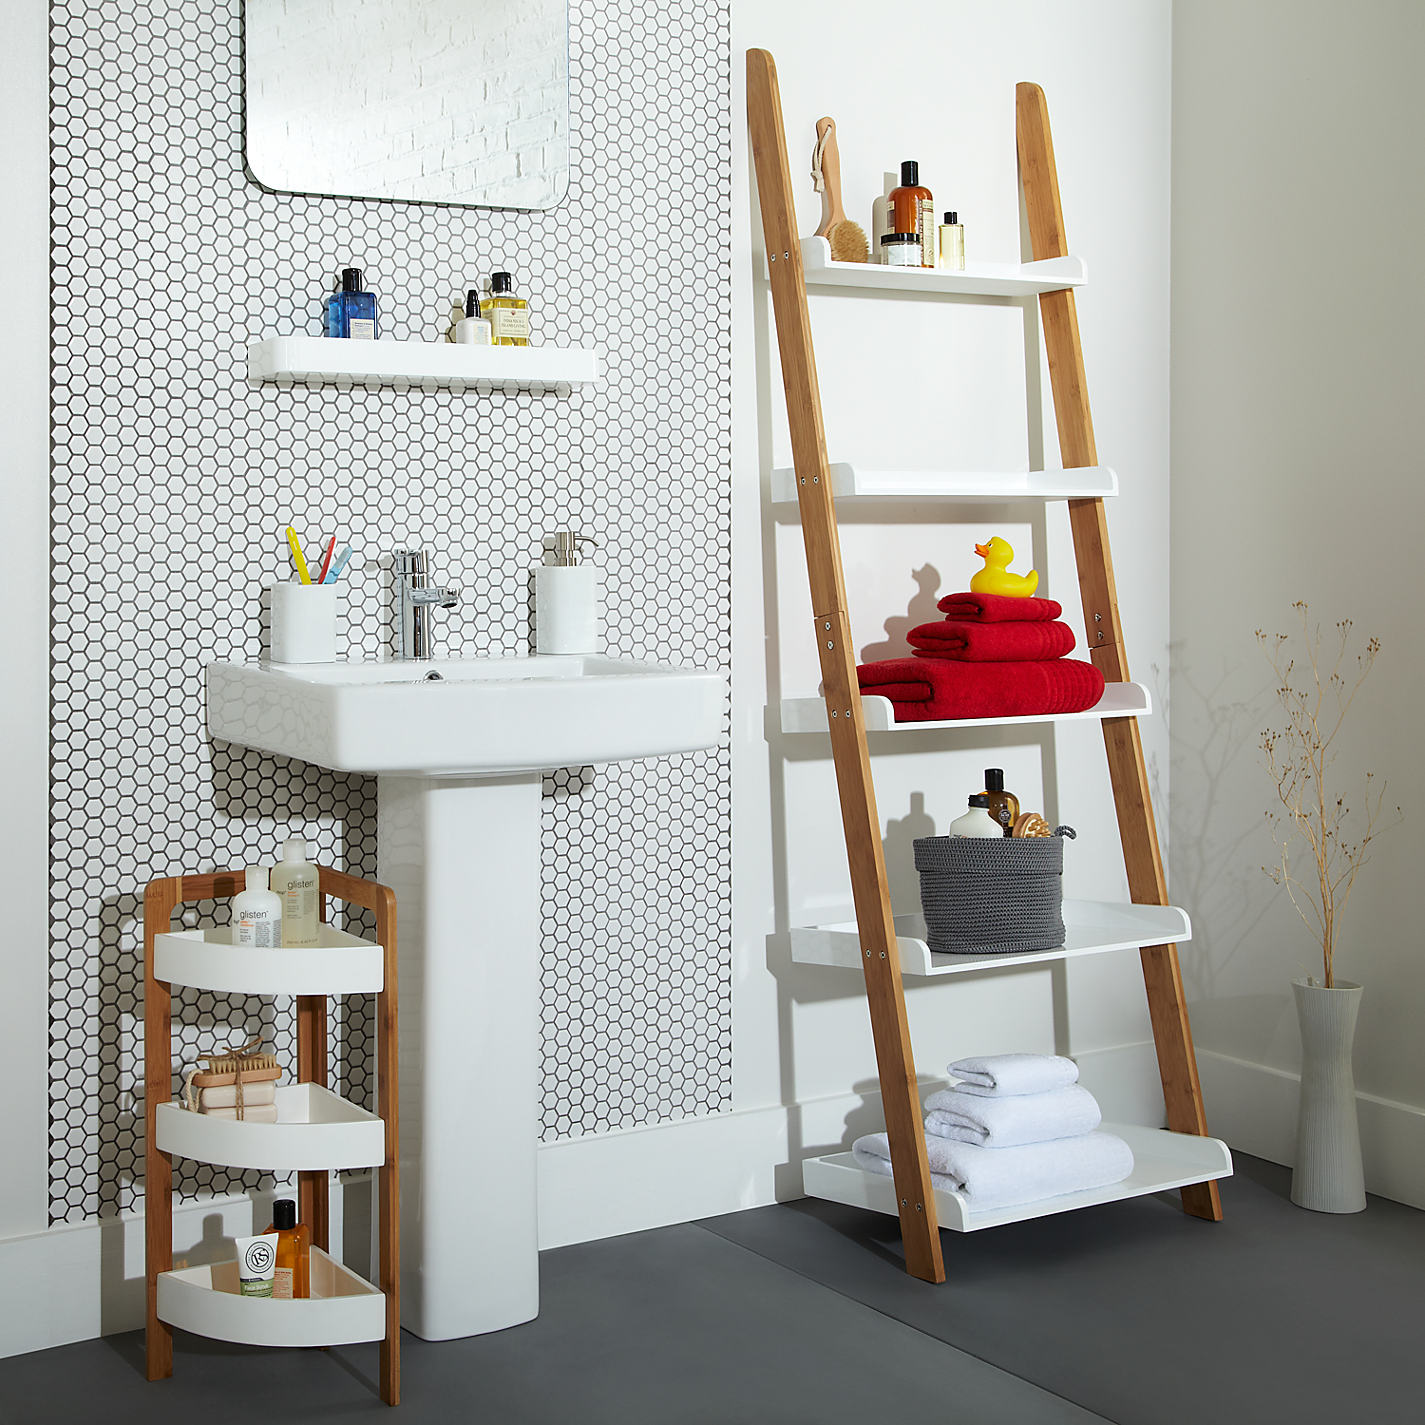 Cottage bathroom look add this bathroom ladder shelf - Echelle decorative salle de bain ...